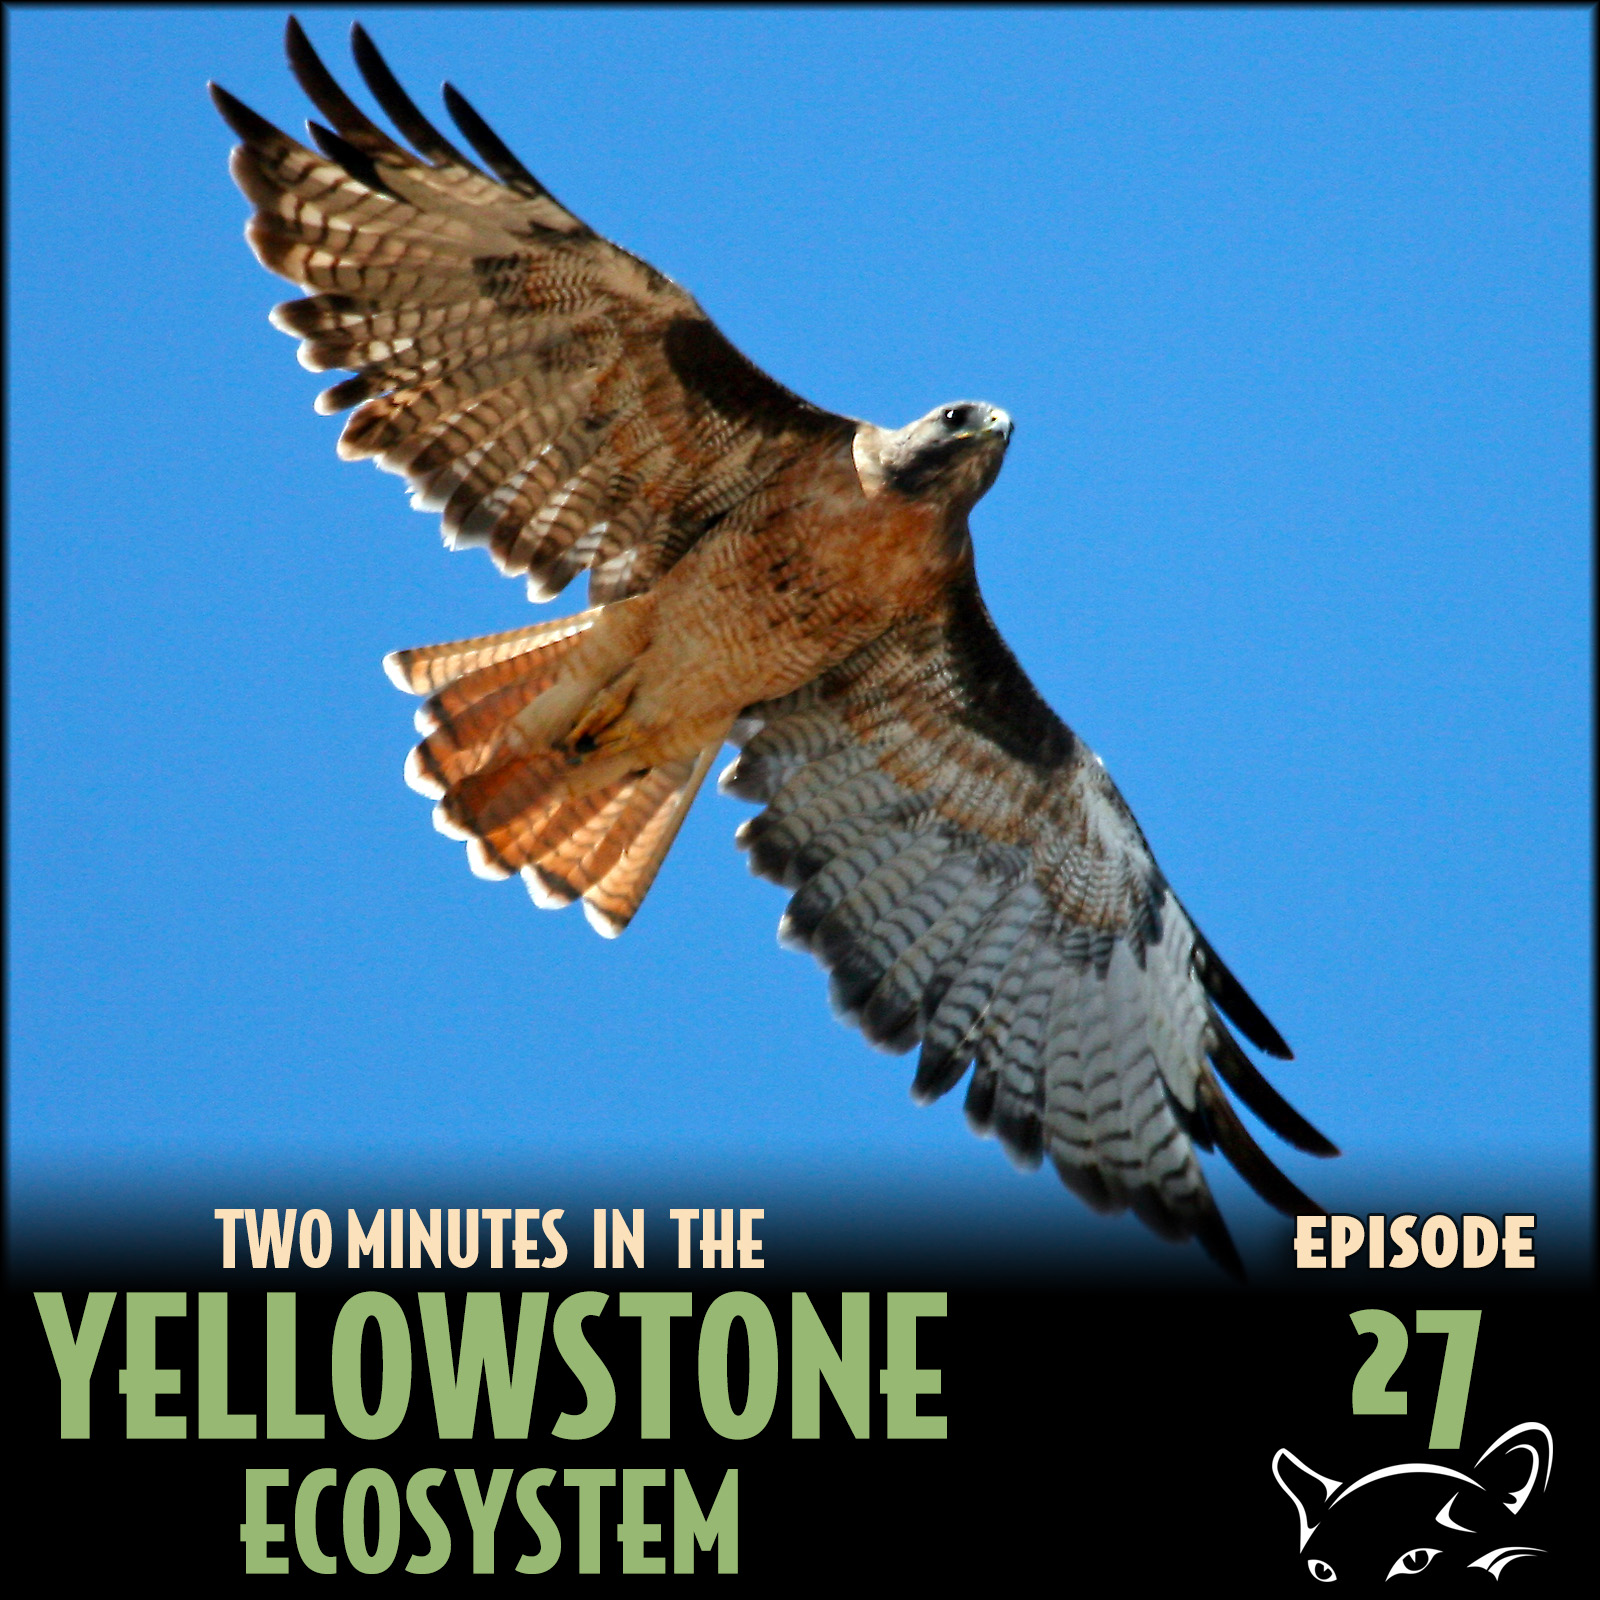 Episode 27: Red-Tailed Hawks